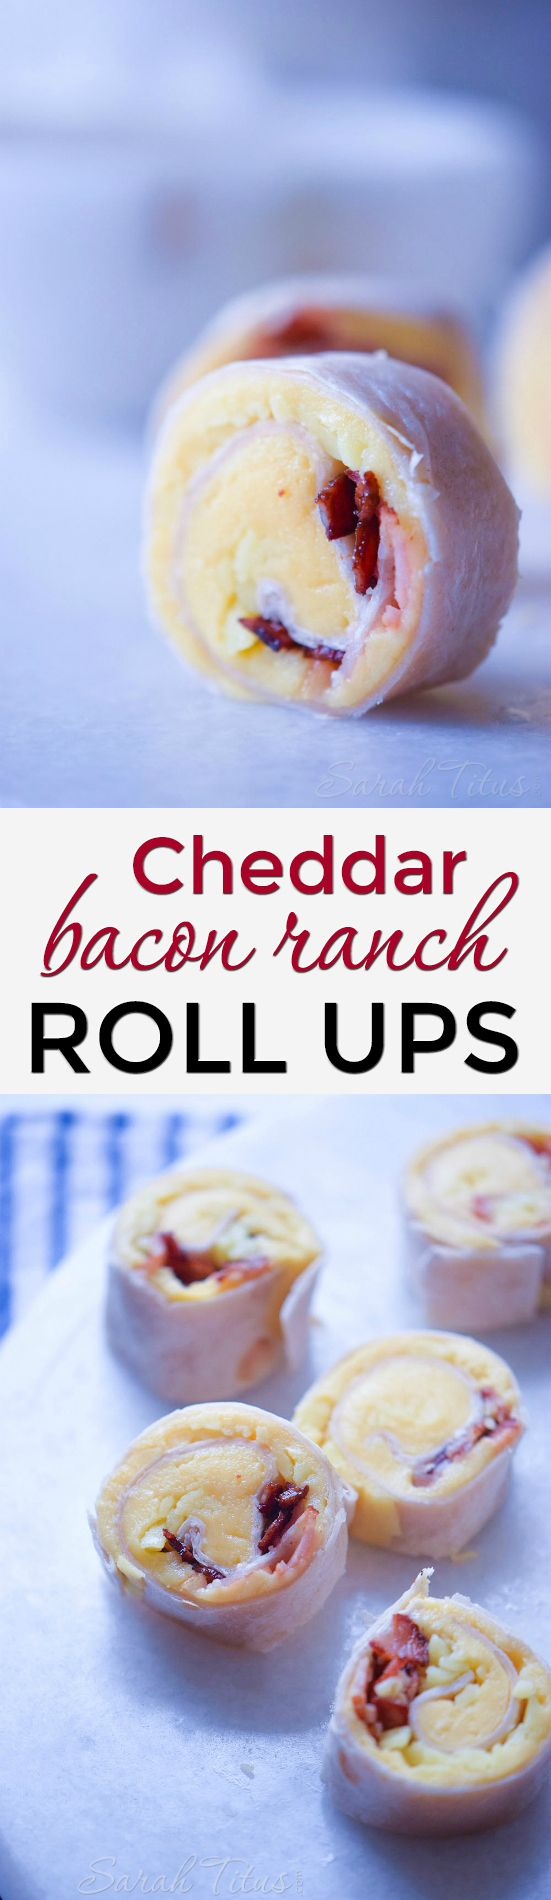 Perfect for your next get-together or add them to your husband's lunch box, these cheddar bacon ranch roll ups are super creamy and packed with the bold flavors of bacon and ranch.